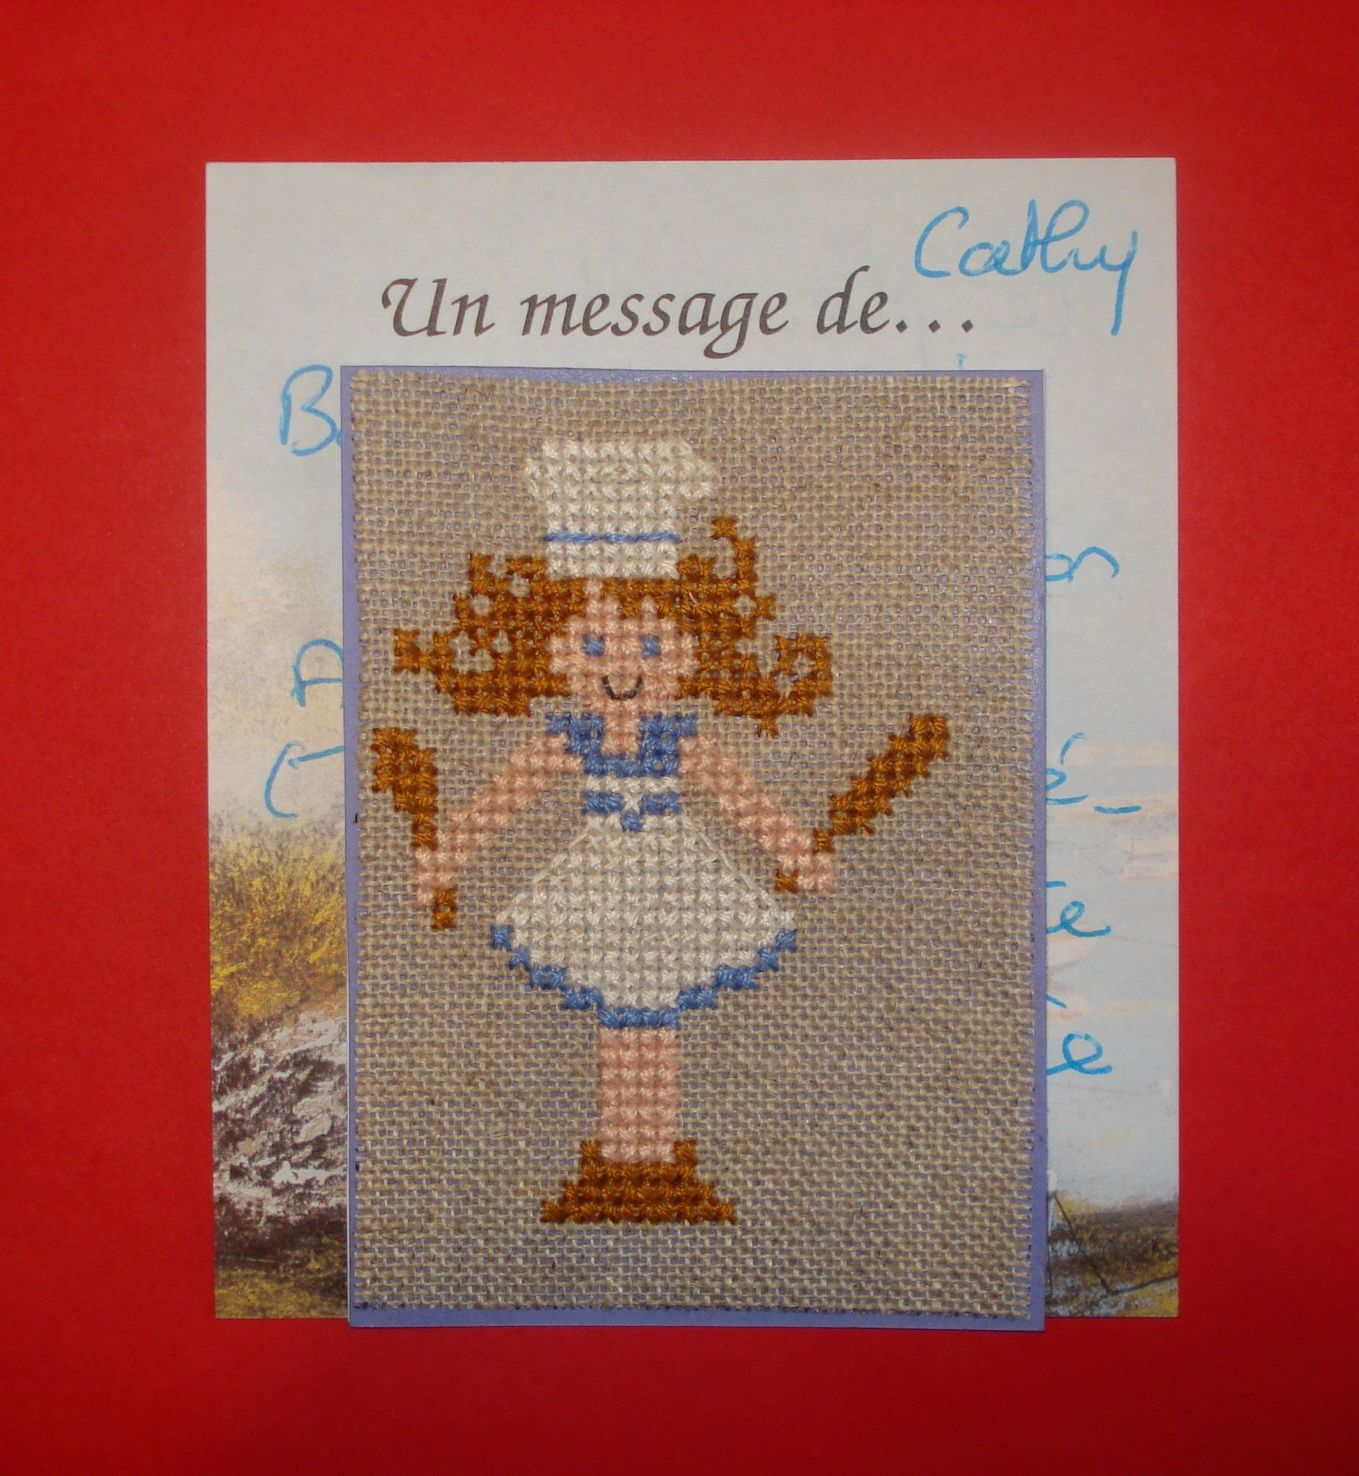 ATC de Cathy Patch (1).